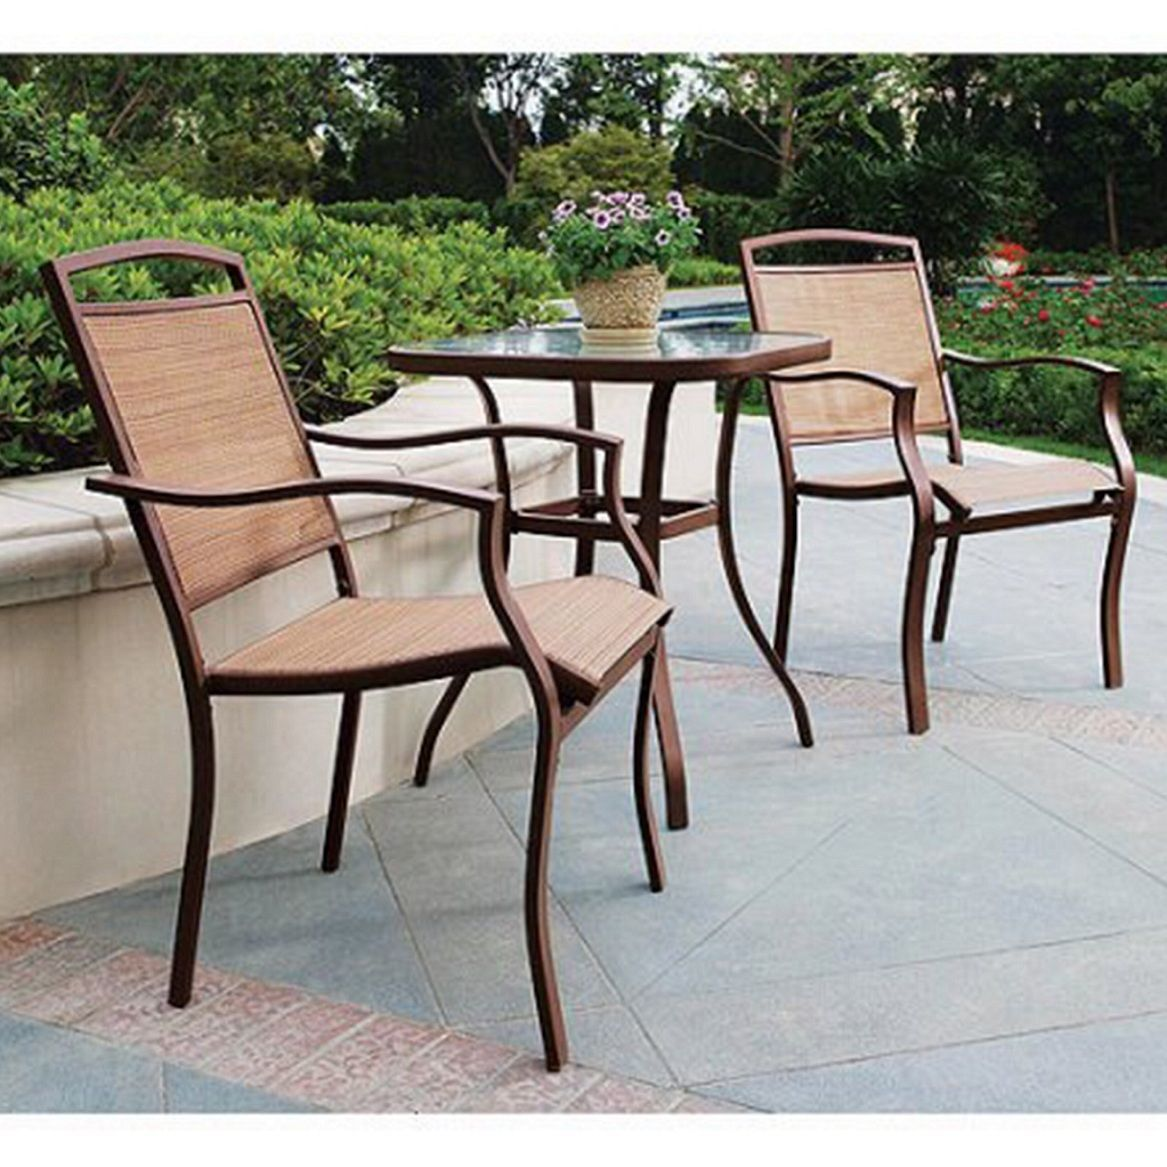 3 Piece Bistro Set Furniture Table Chairs Seat Dining Living Decor Garden Pat